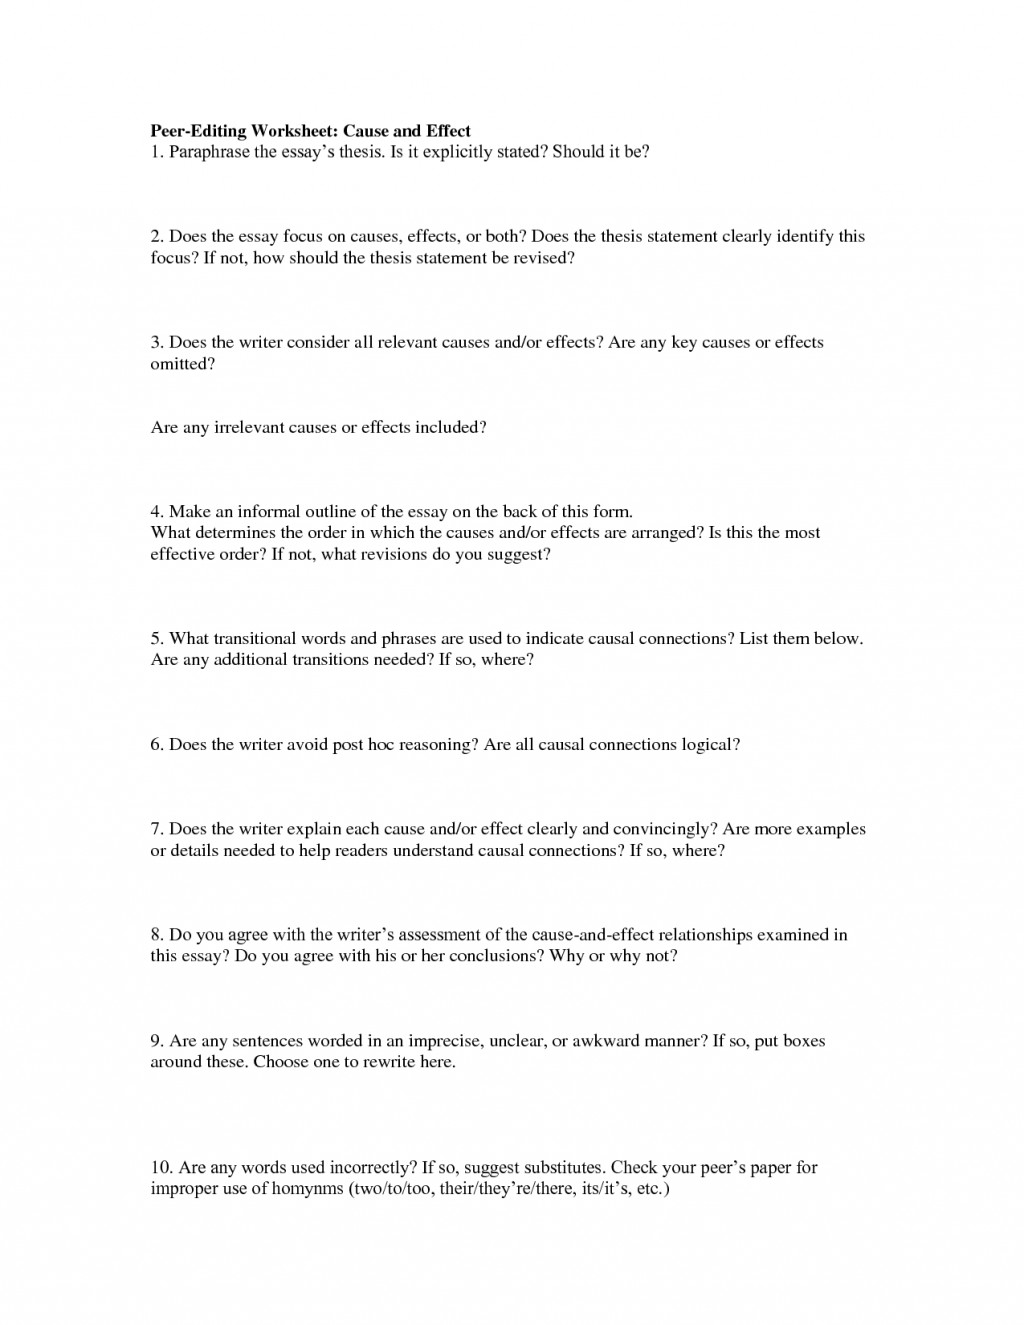 021 Essay Example Peering Worksheet For Cause And Effect 438929 Fascinating Edit Free Grammar Service Large